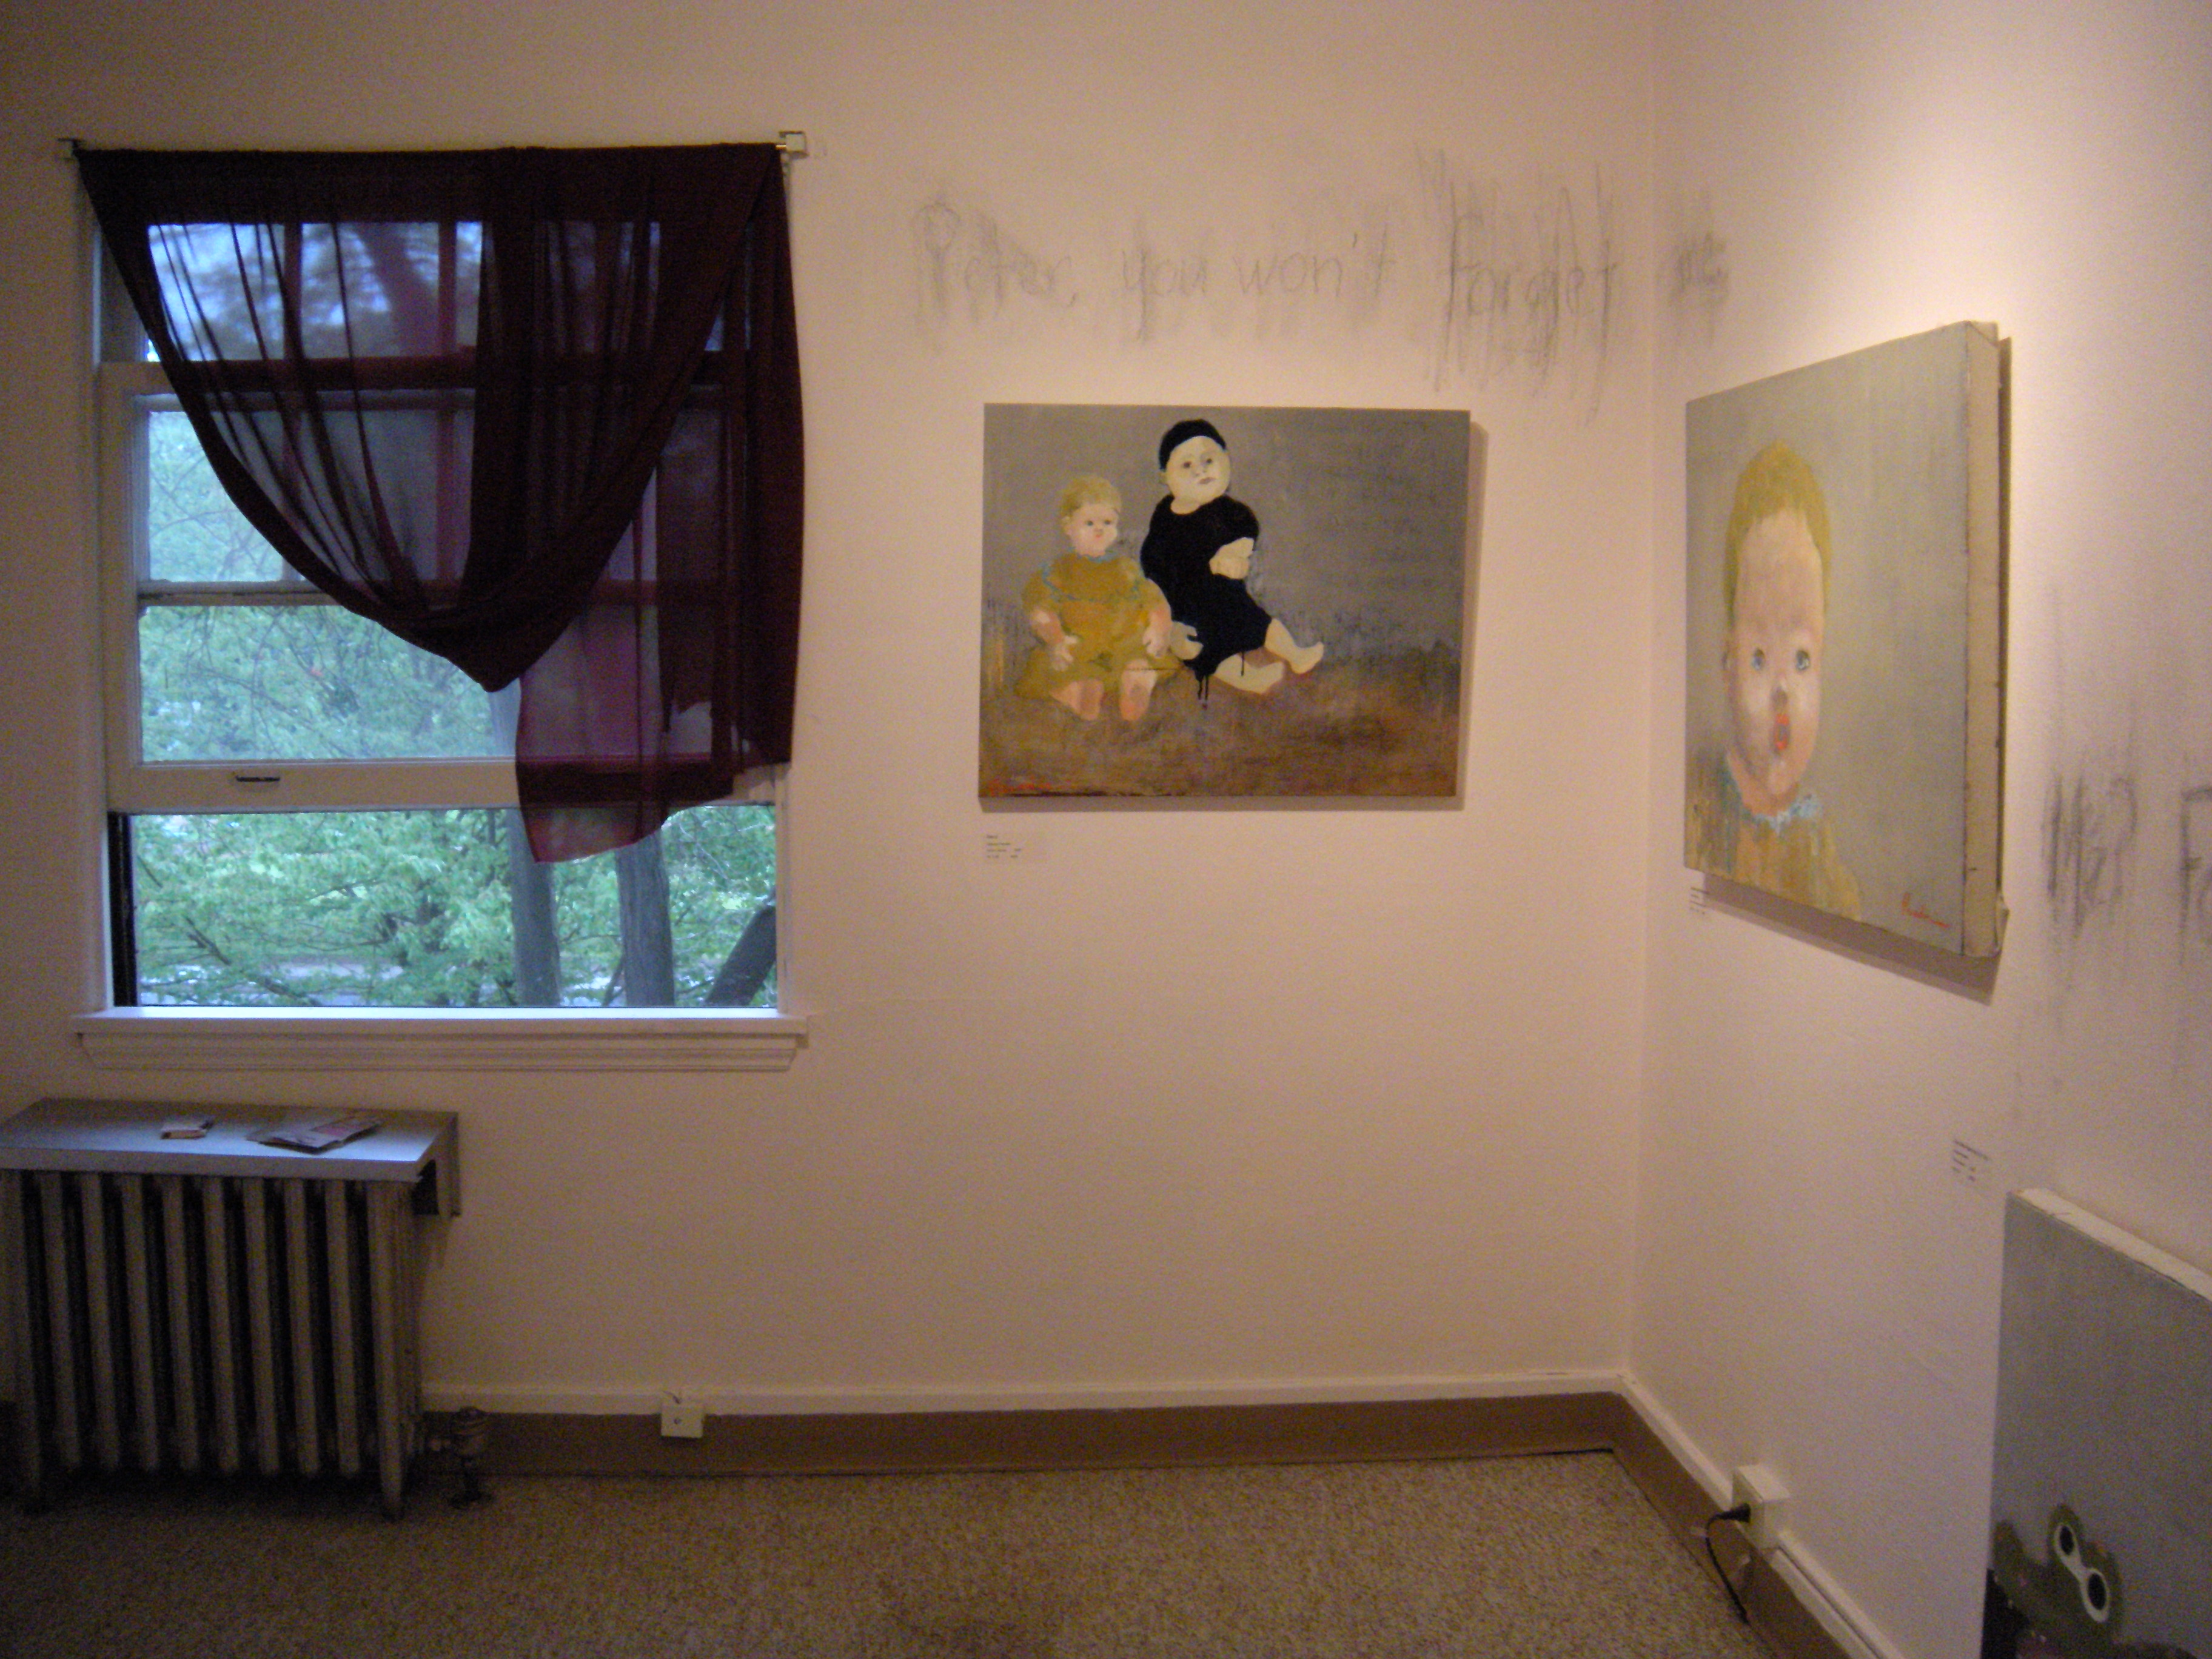 The Darling's Nursery. Paintings & Installation by JParadisi 2009